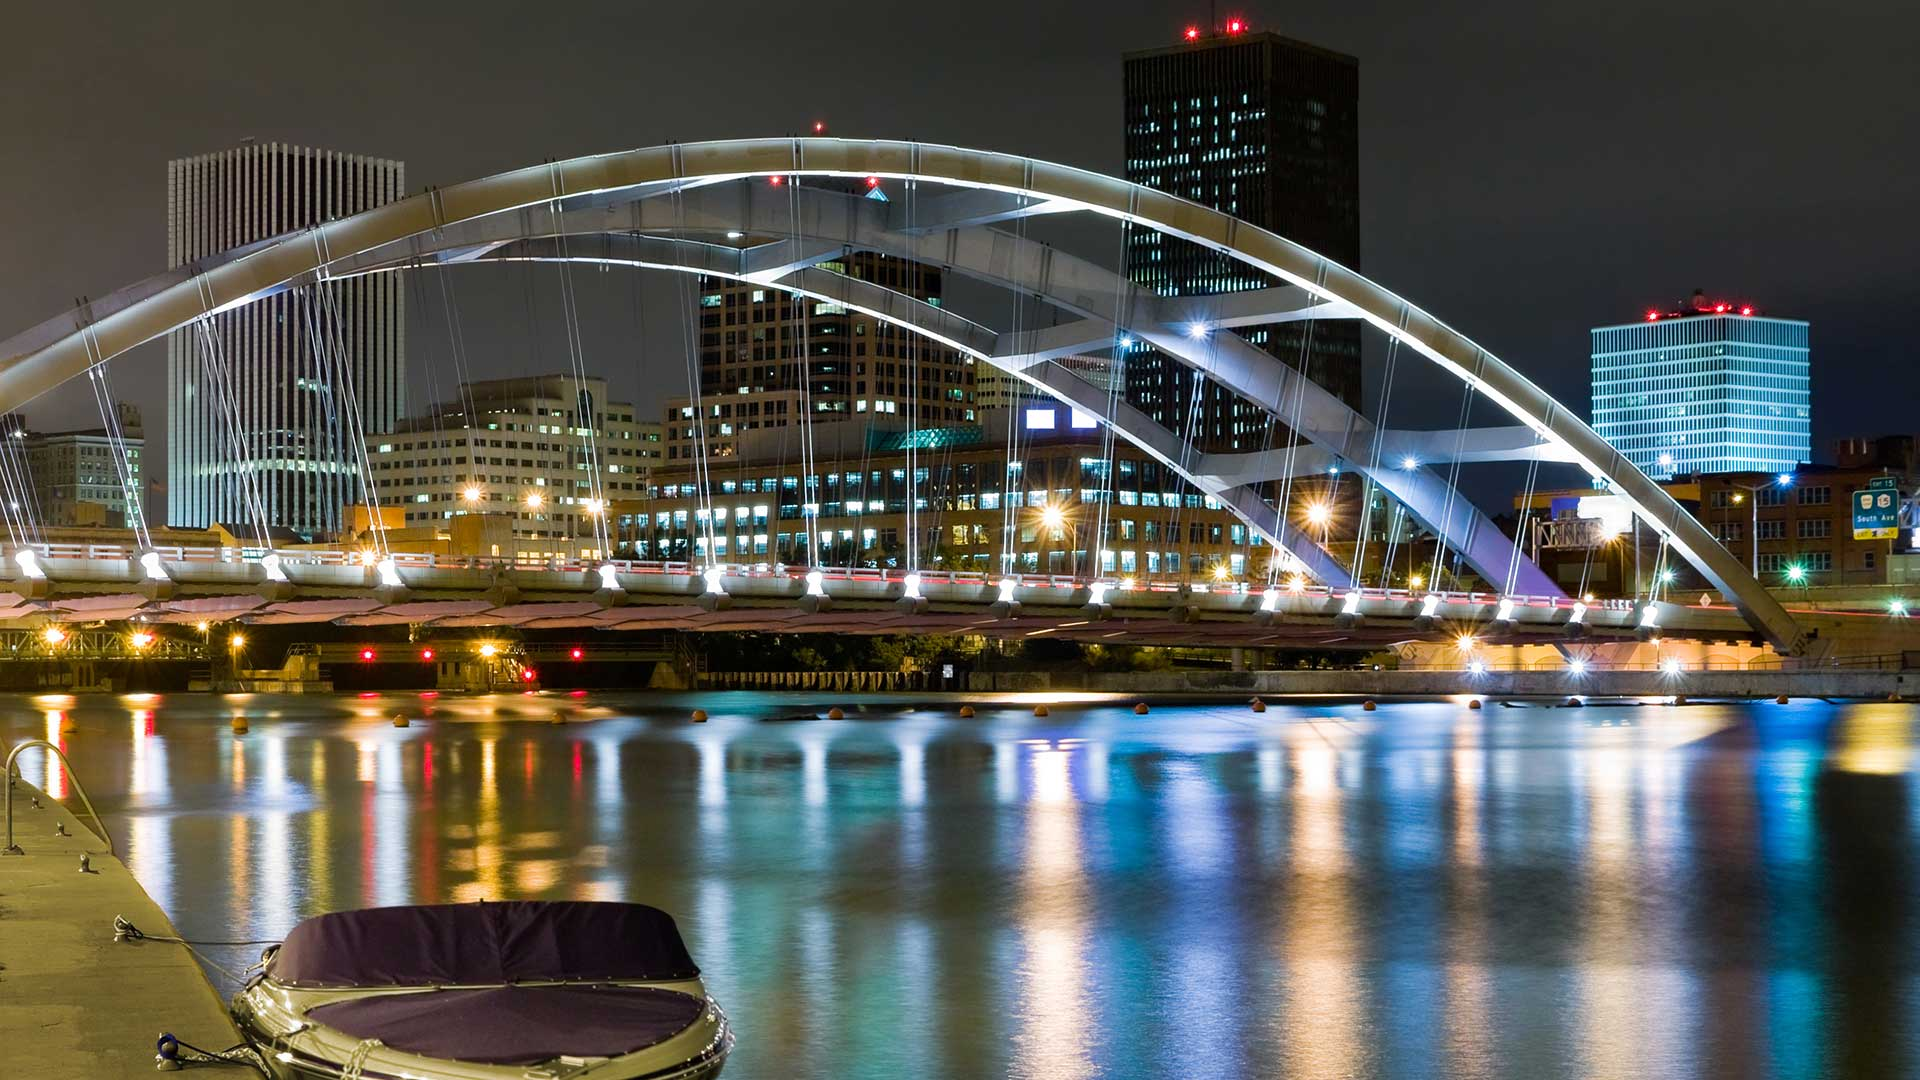 Panorama to illustrate dating in rochester